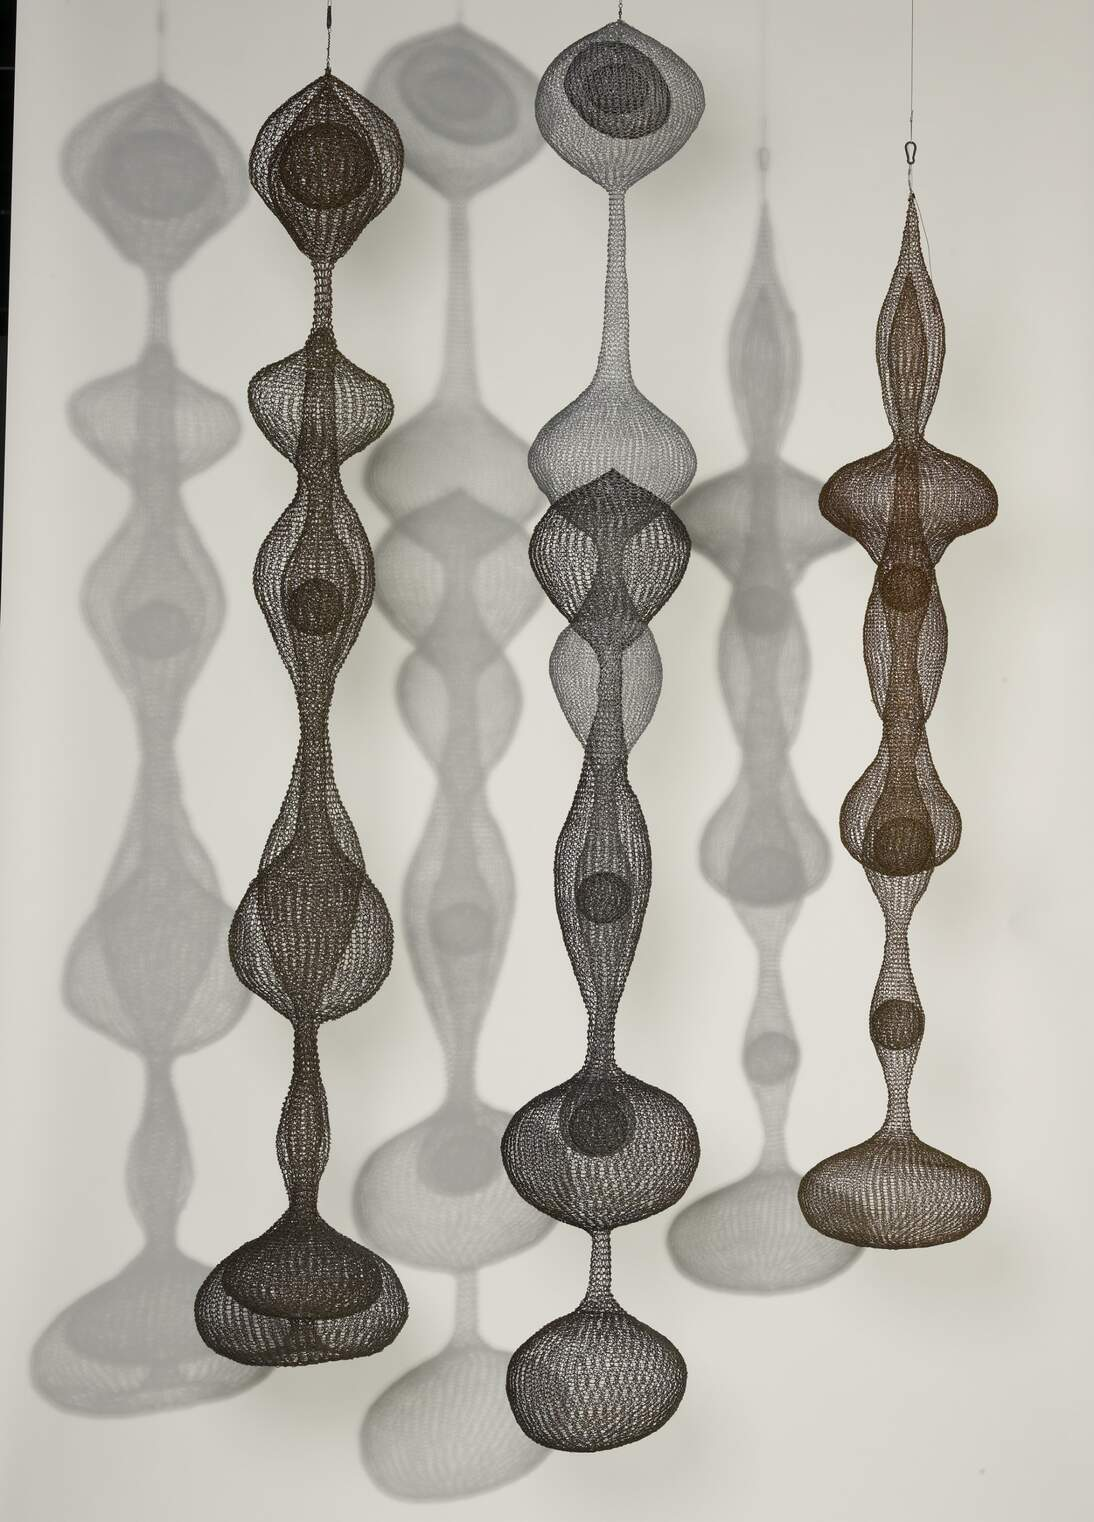 Selection of untitled sculptures by Ruth Asawa, Fine Arts Museums of San Francisco. Photograph by Joseph McDonald. © 2020 Estate of Ruth Asawa / Artists Rights Society (ARS), New York. Courtesy of the Estate of Ruth Asawa and David Zwirner Gallery, New York